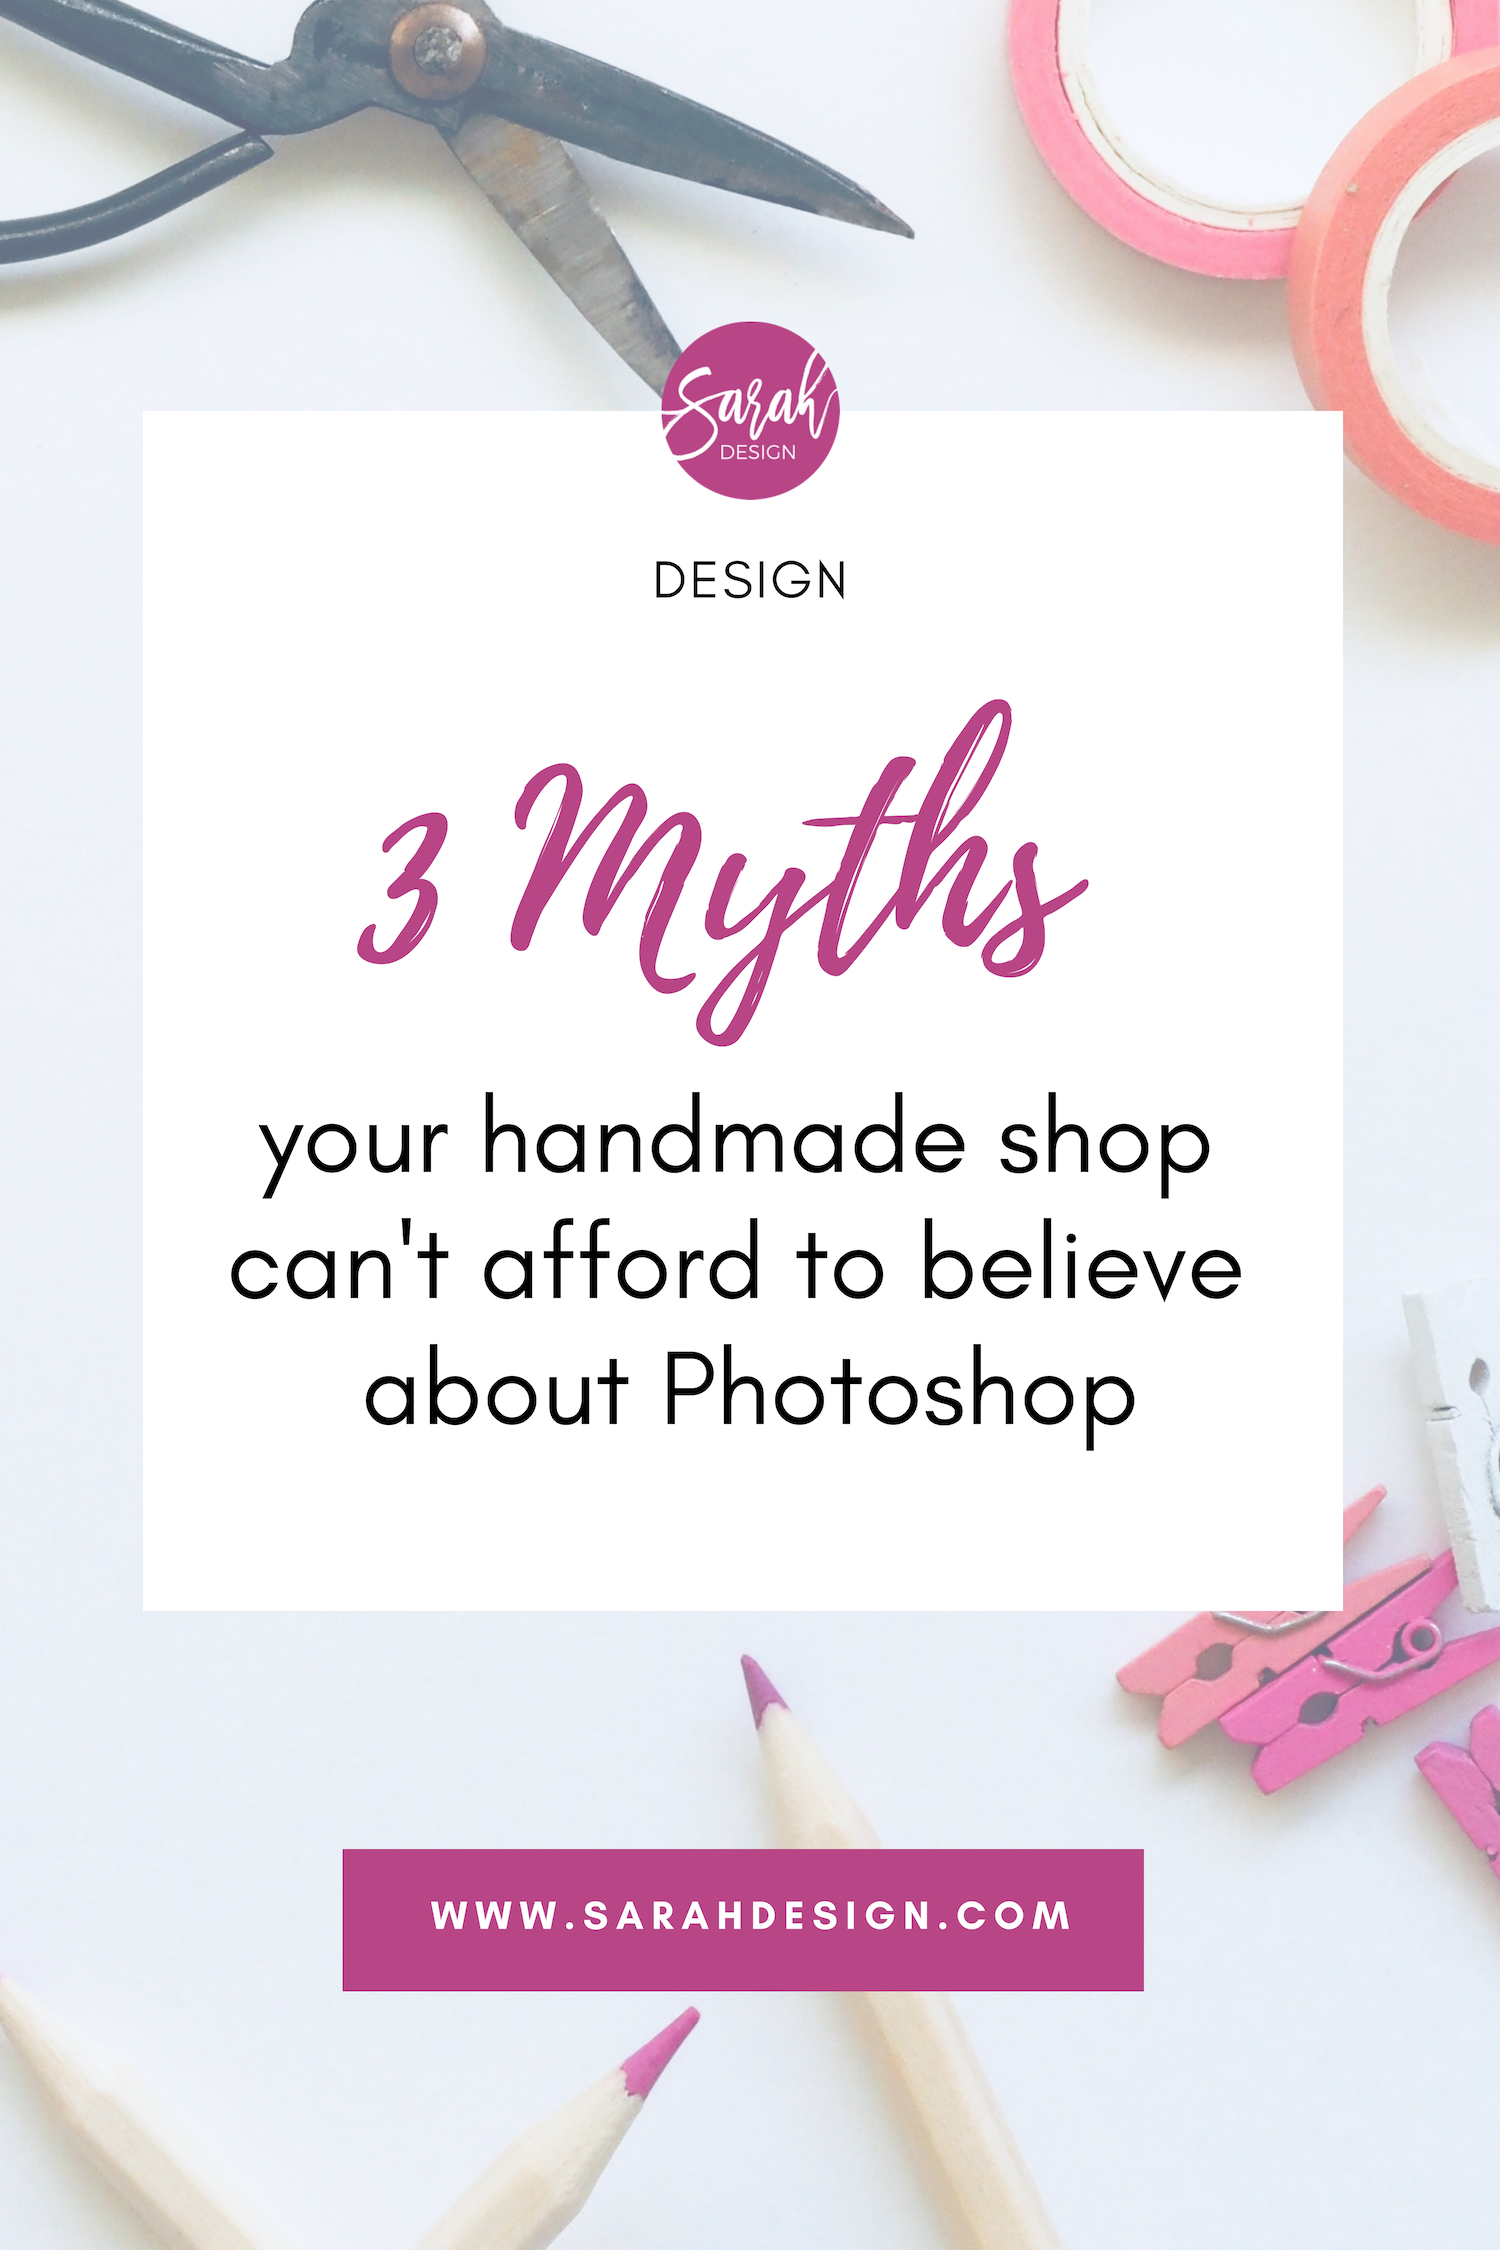 3 myths your handmade shop can't afford to believe about Photoshop. By SarahDesign.com.